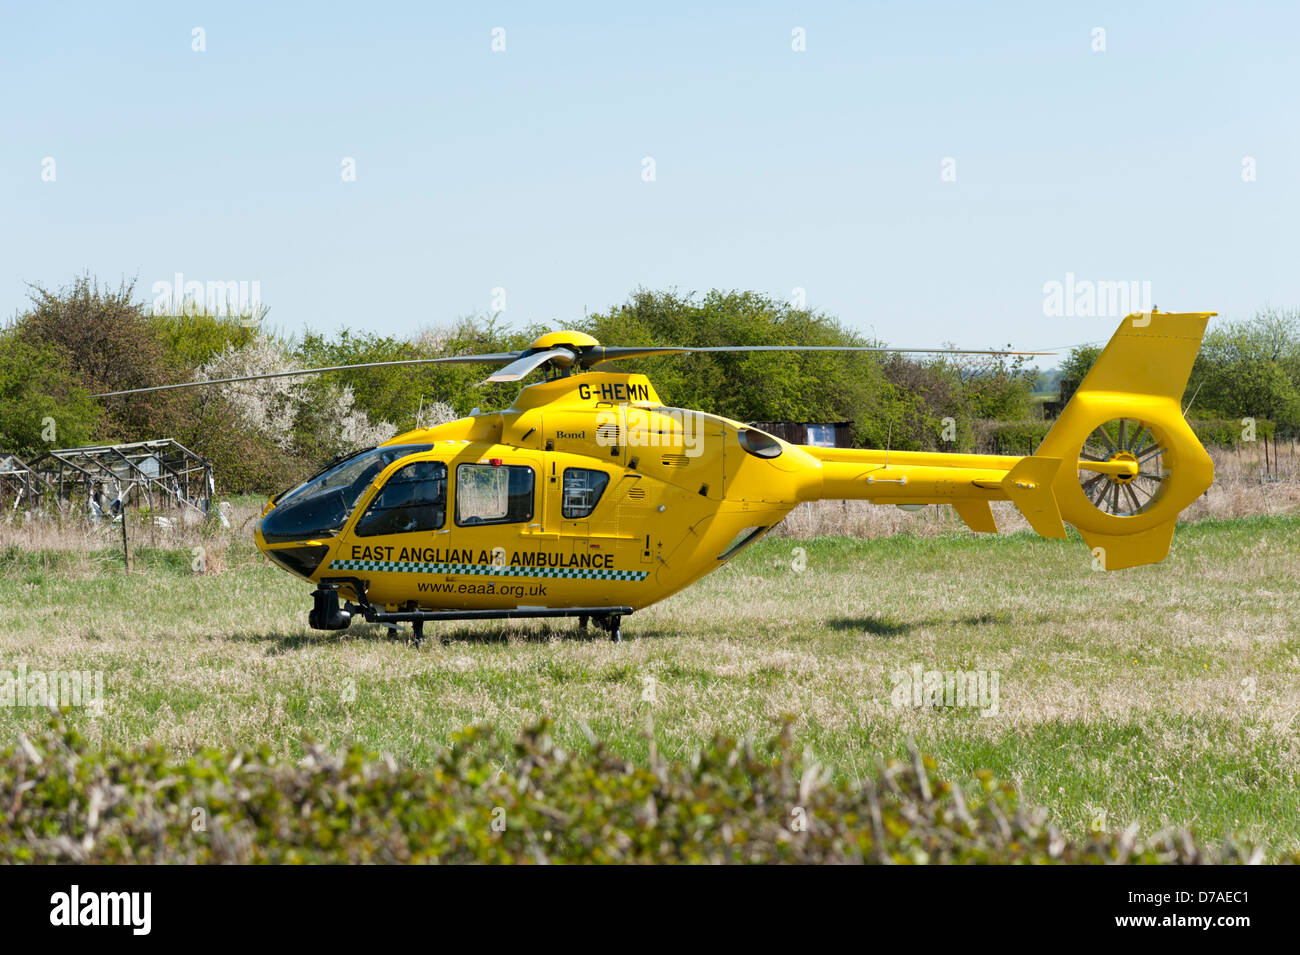 The East Anglia Air Ambulance helicopter in a field in Cambridgeshire UK - Stock Image